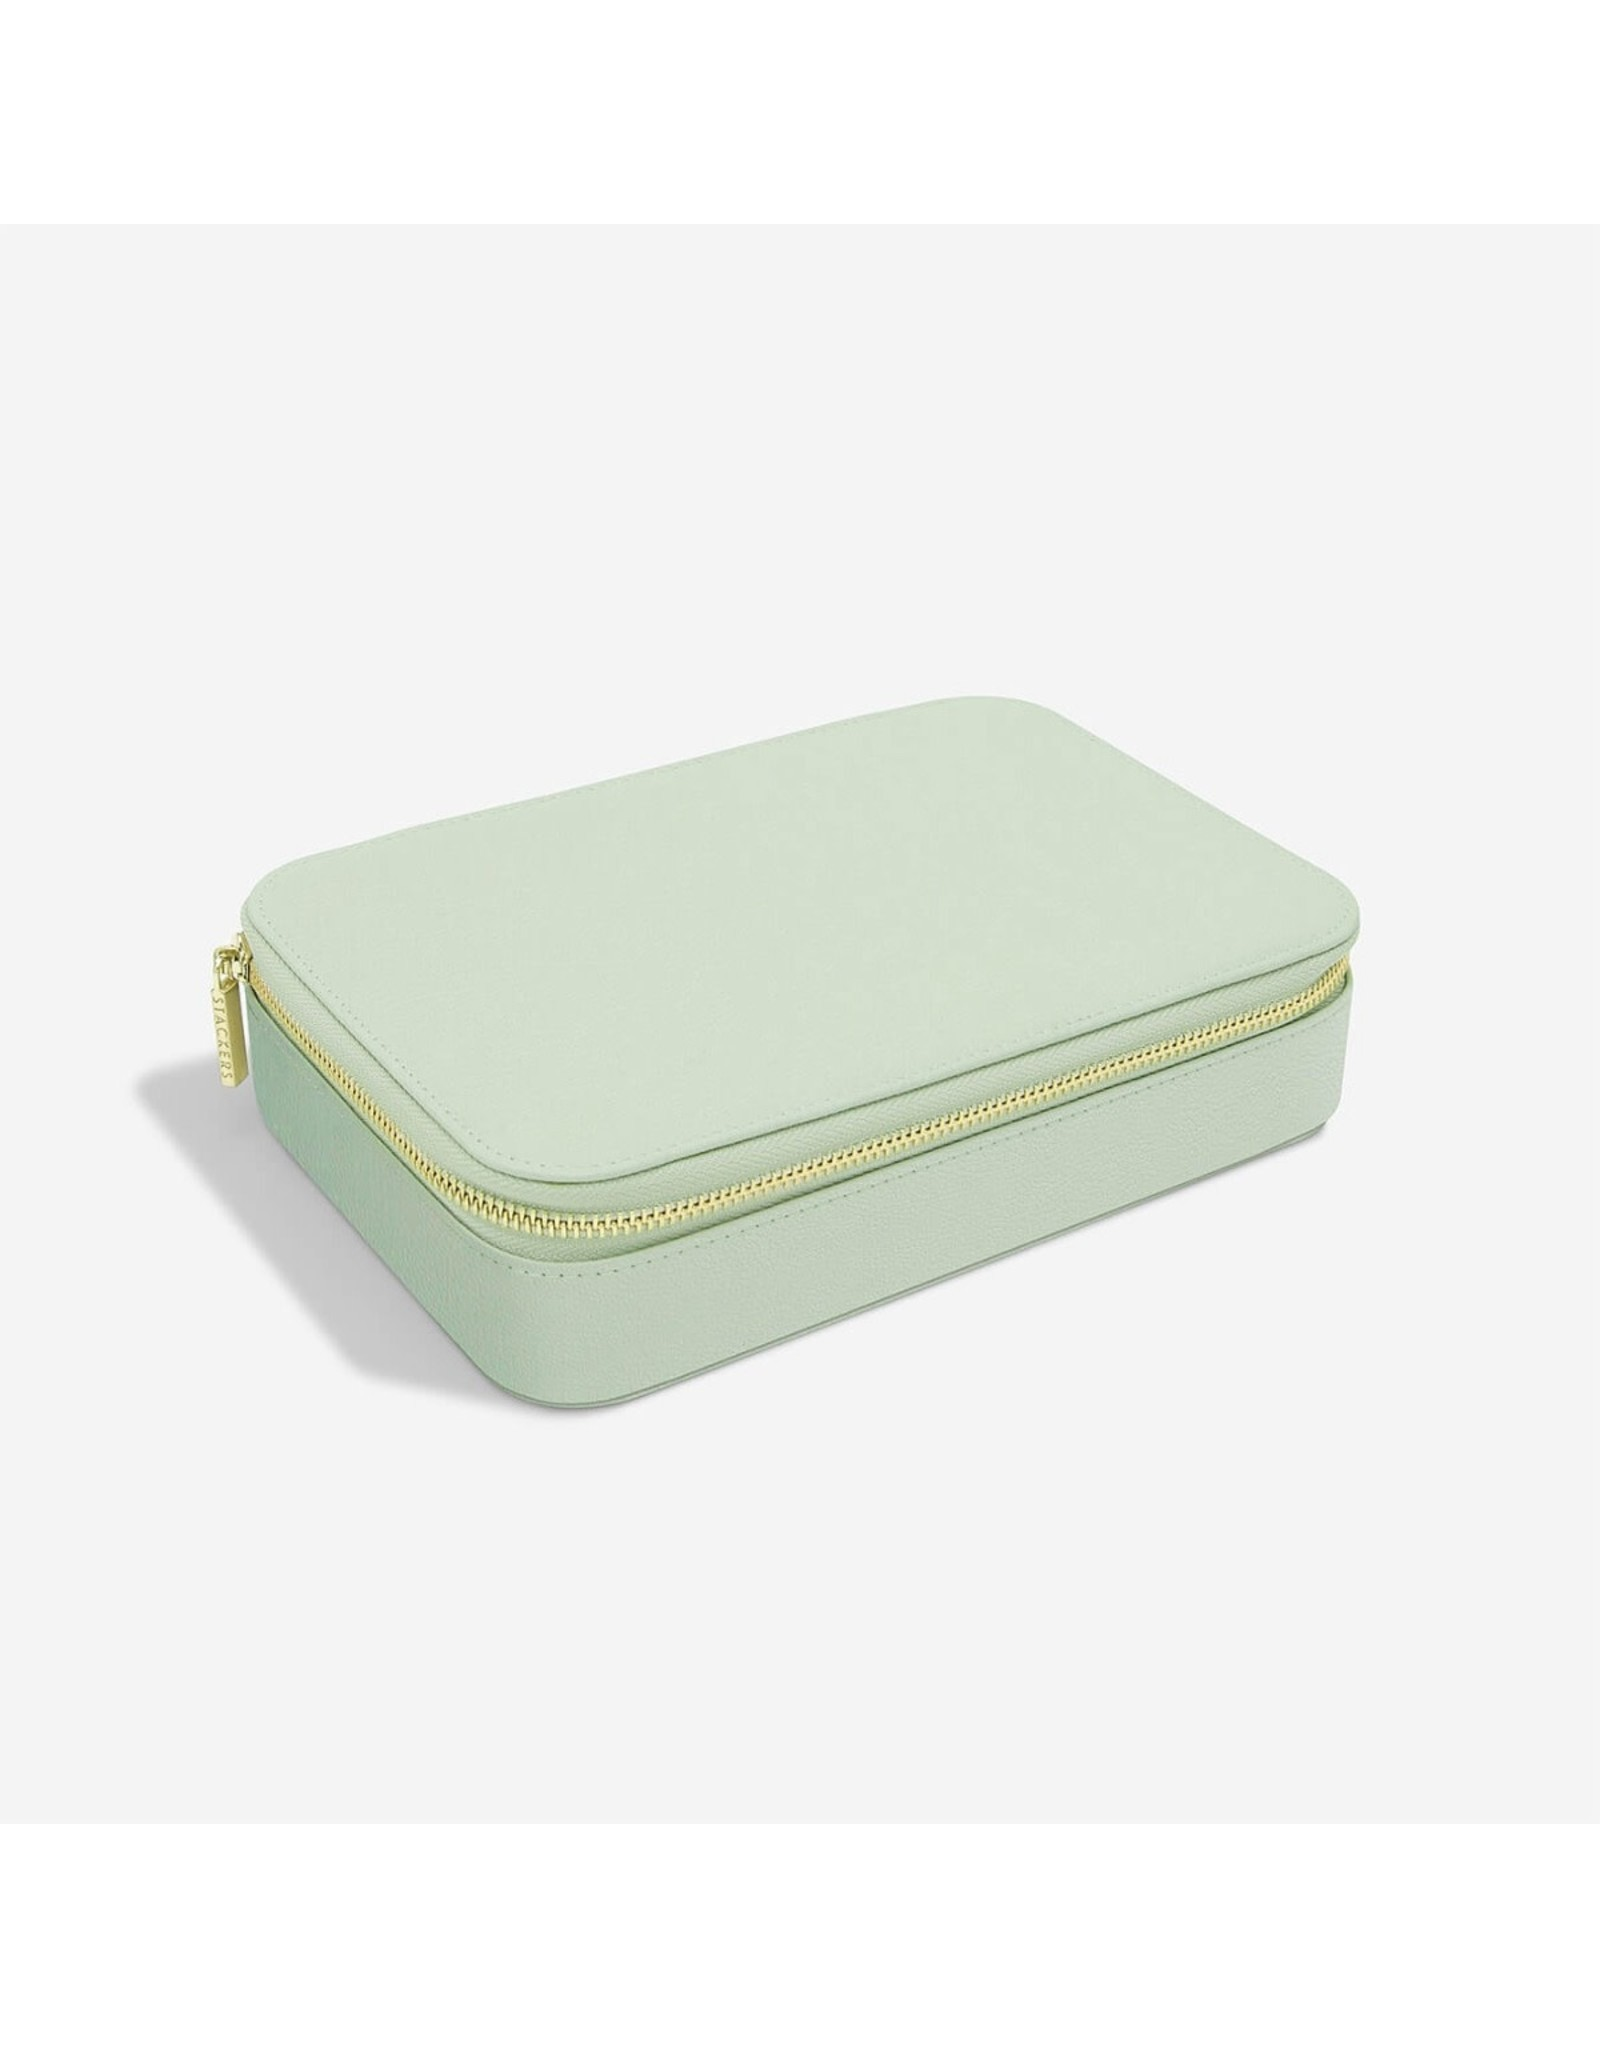 Stackers Sage Green - Travelbox - Square